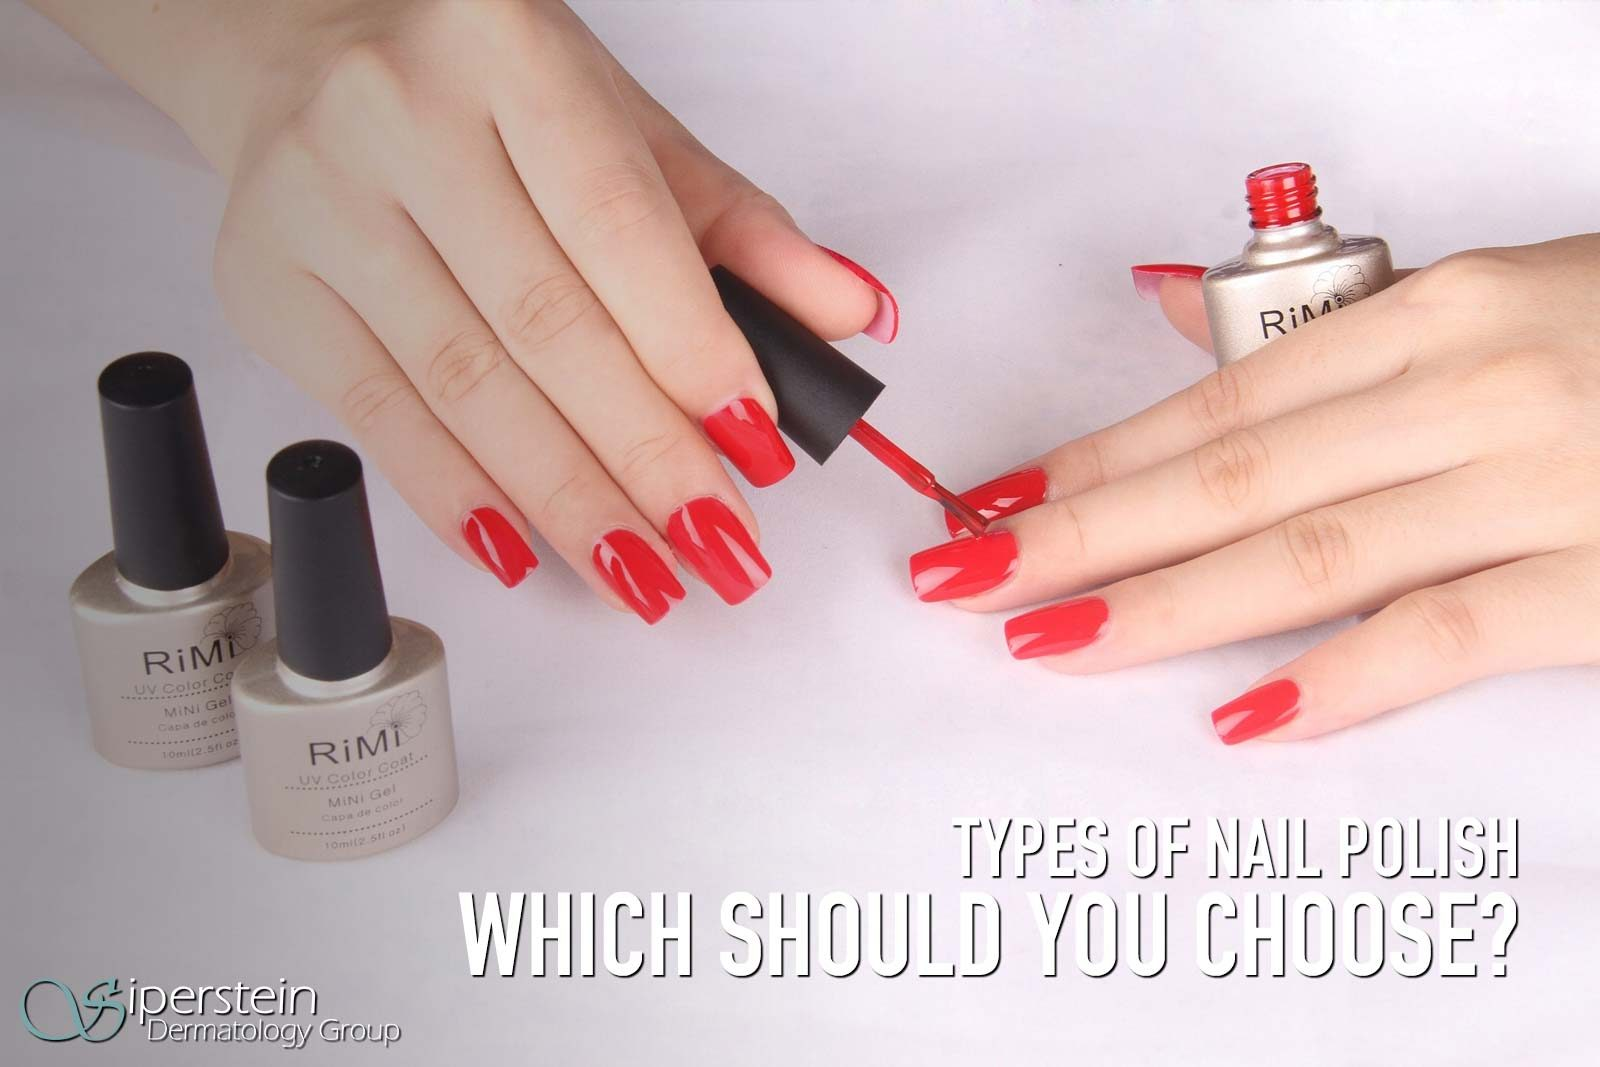 Know Your Nail Polish Options And Associated Risks